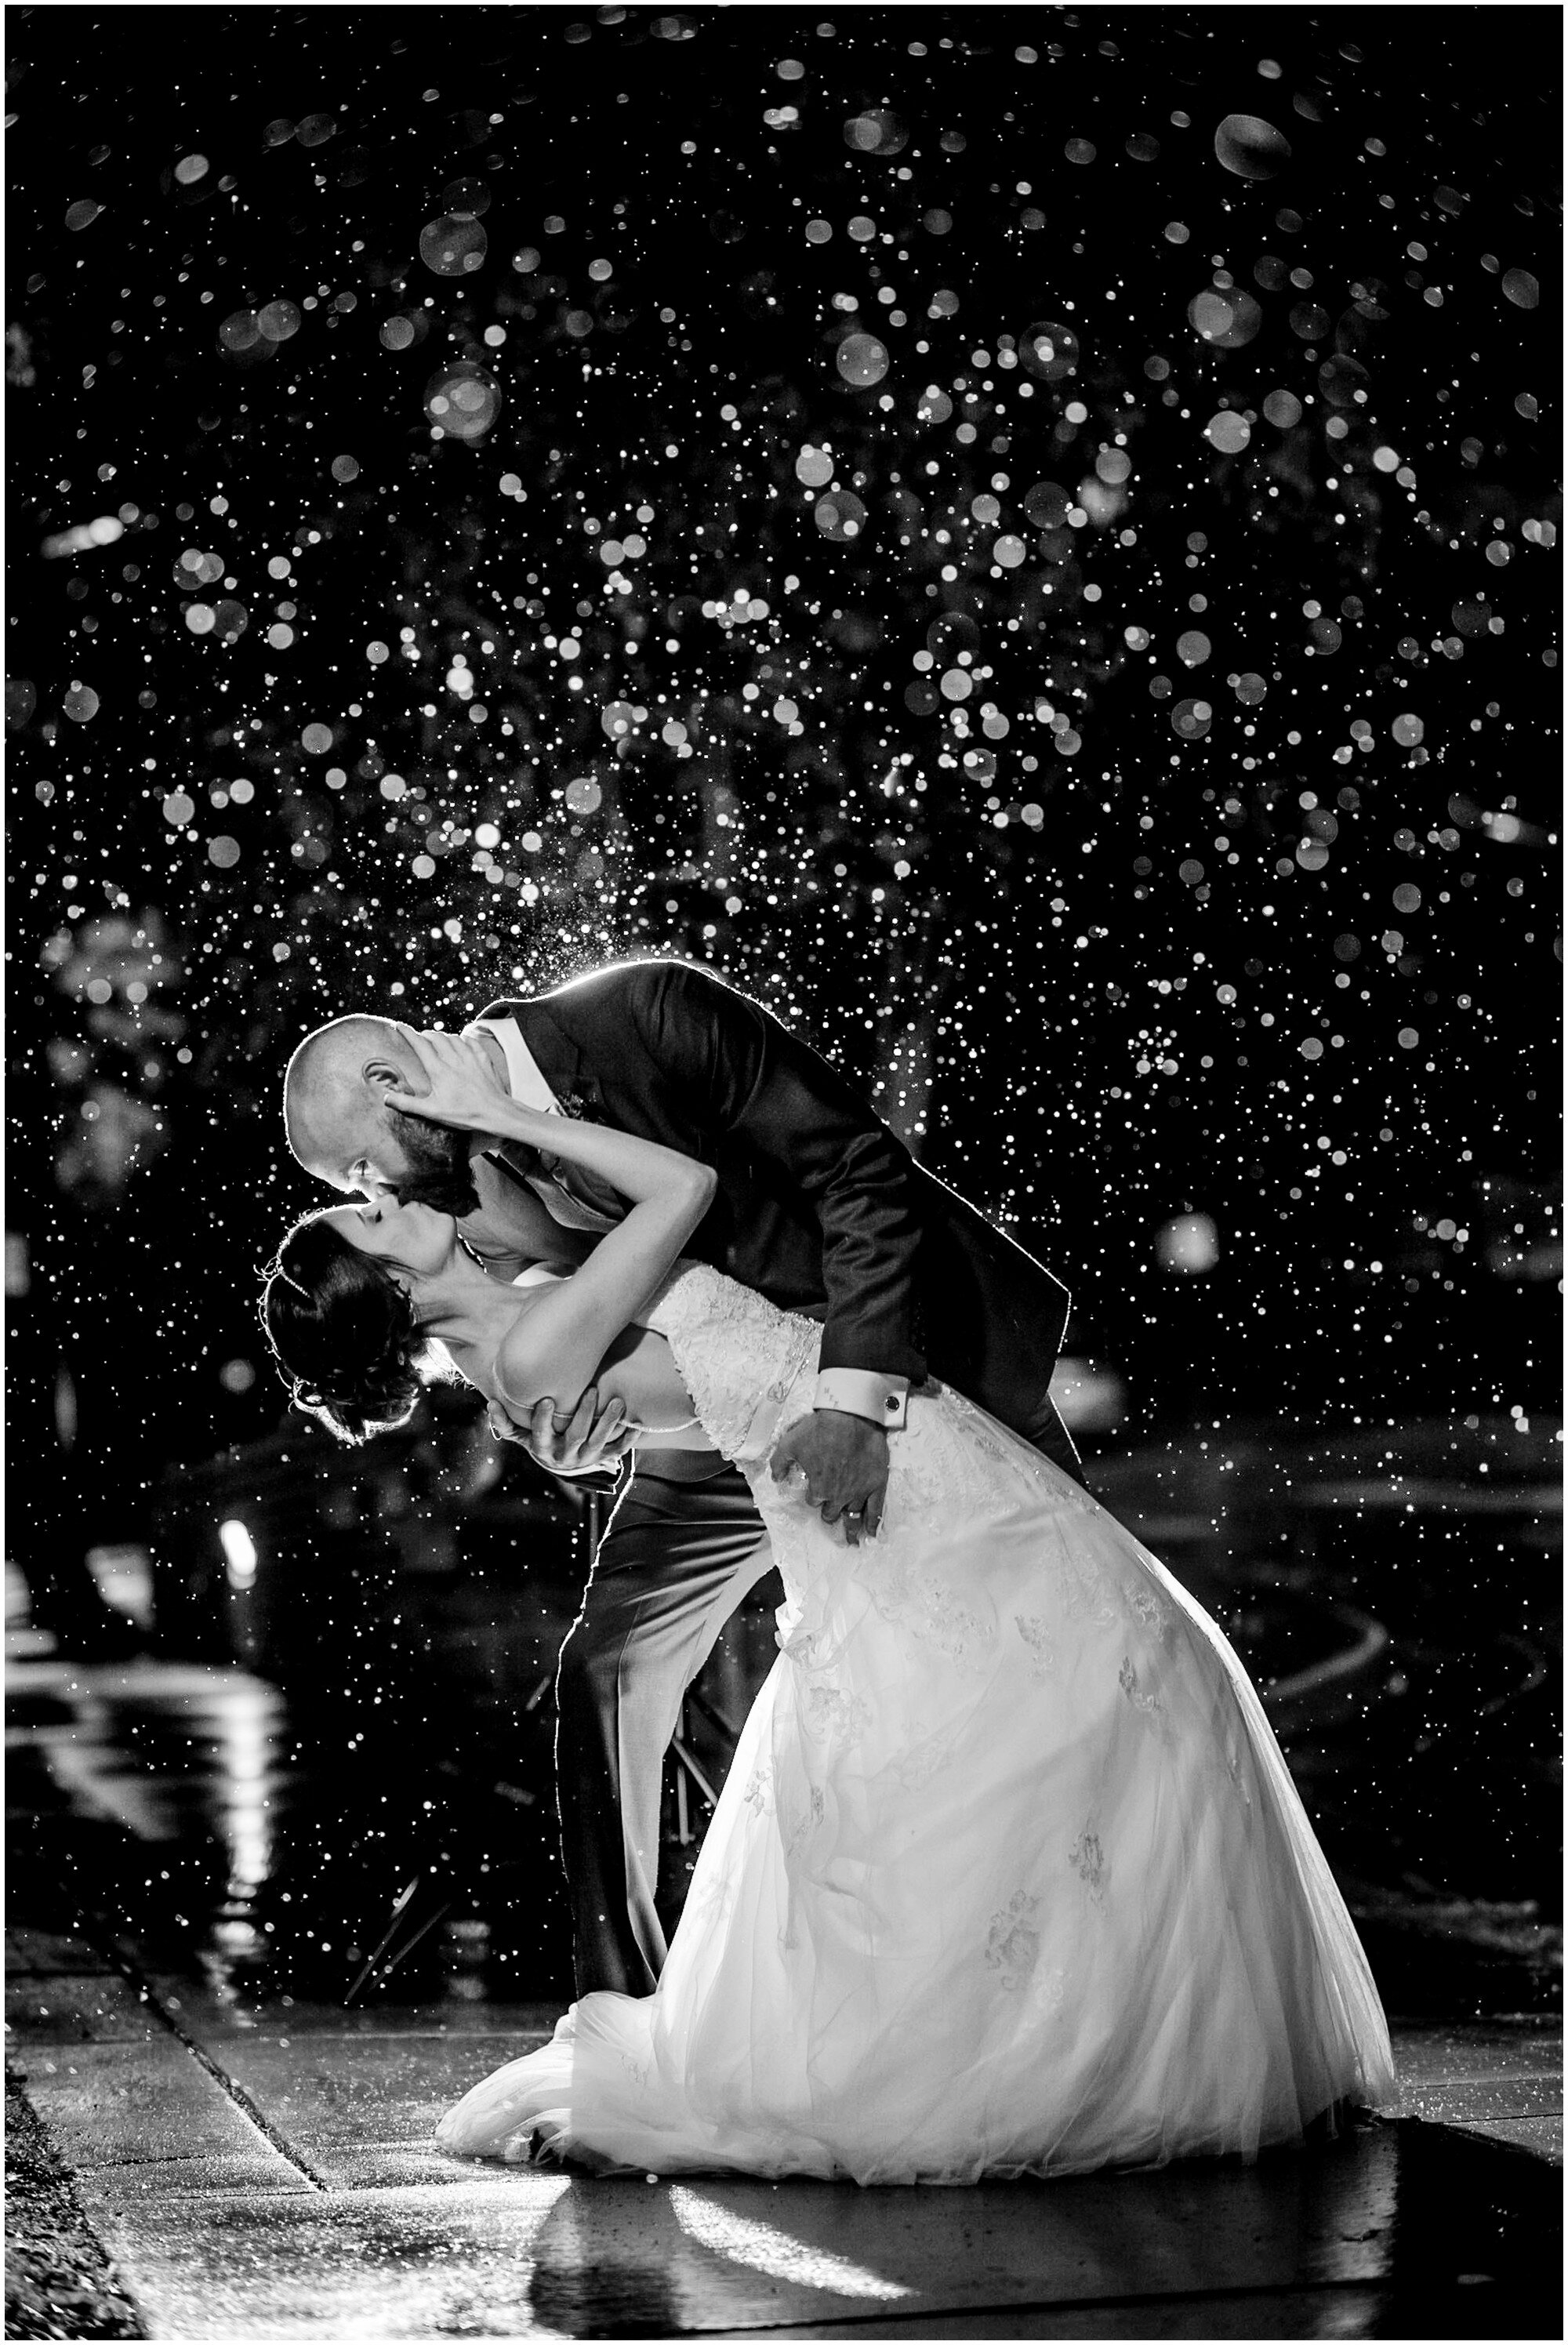 Bride and groom kiss on their wedding night in Boulder Colorado while the snow falls.